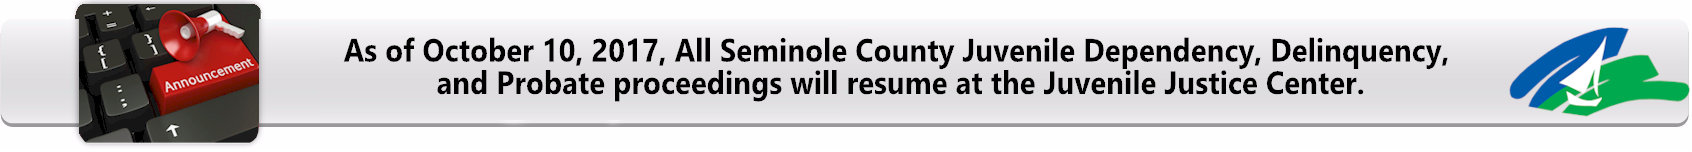 As of October 10, 2017, All Seminole County Juvenile Dependency, Delinquency,  and Probate proceedings will resume at the Juvenile Justice Center.